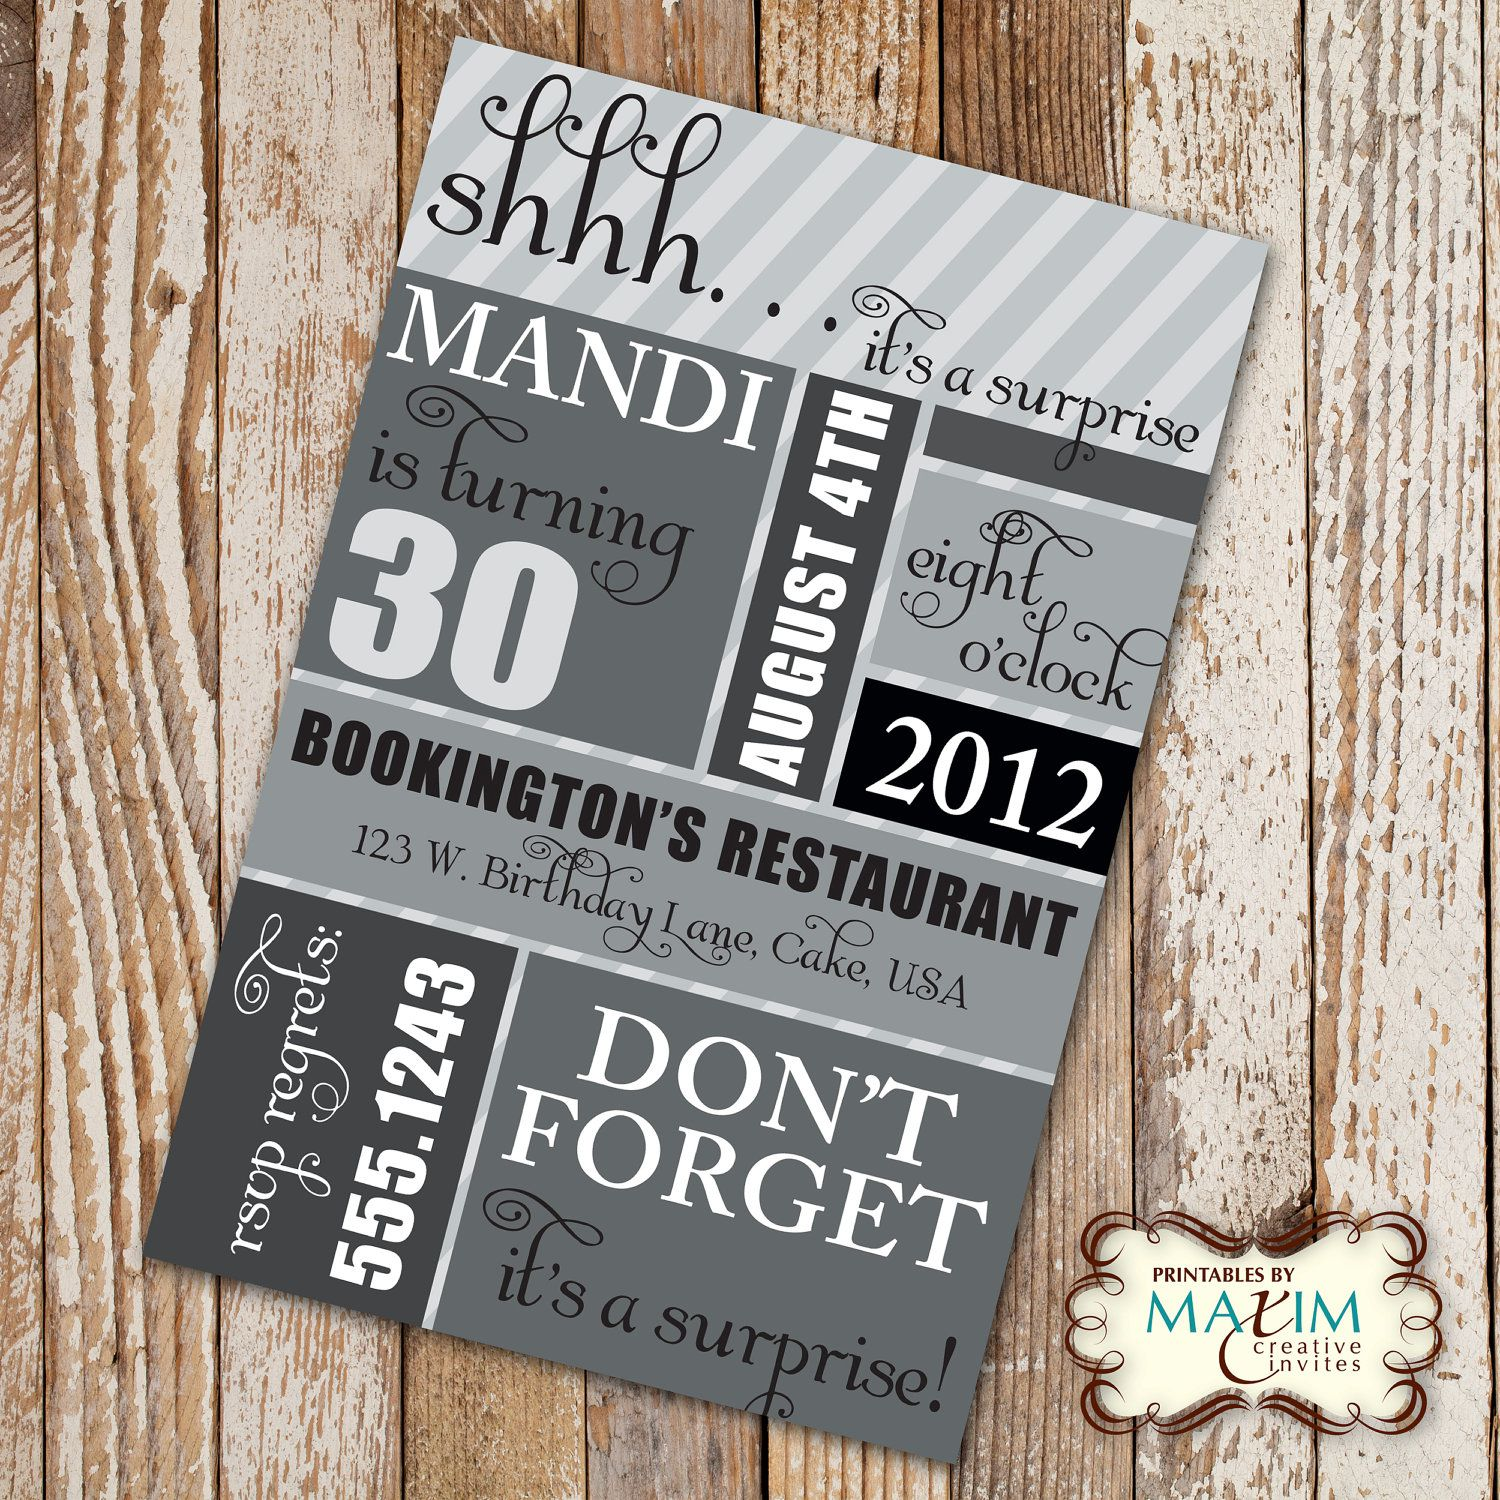 009 Imposing Free Christma Party Invitation Template Uk Picture Full